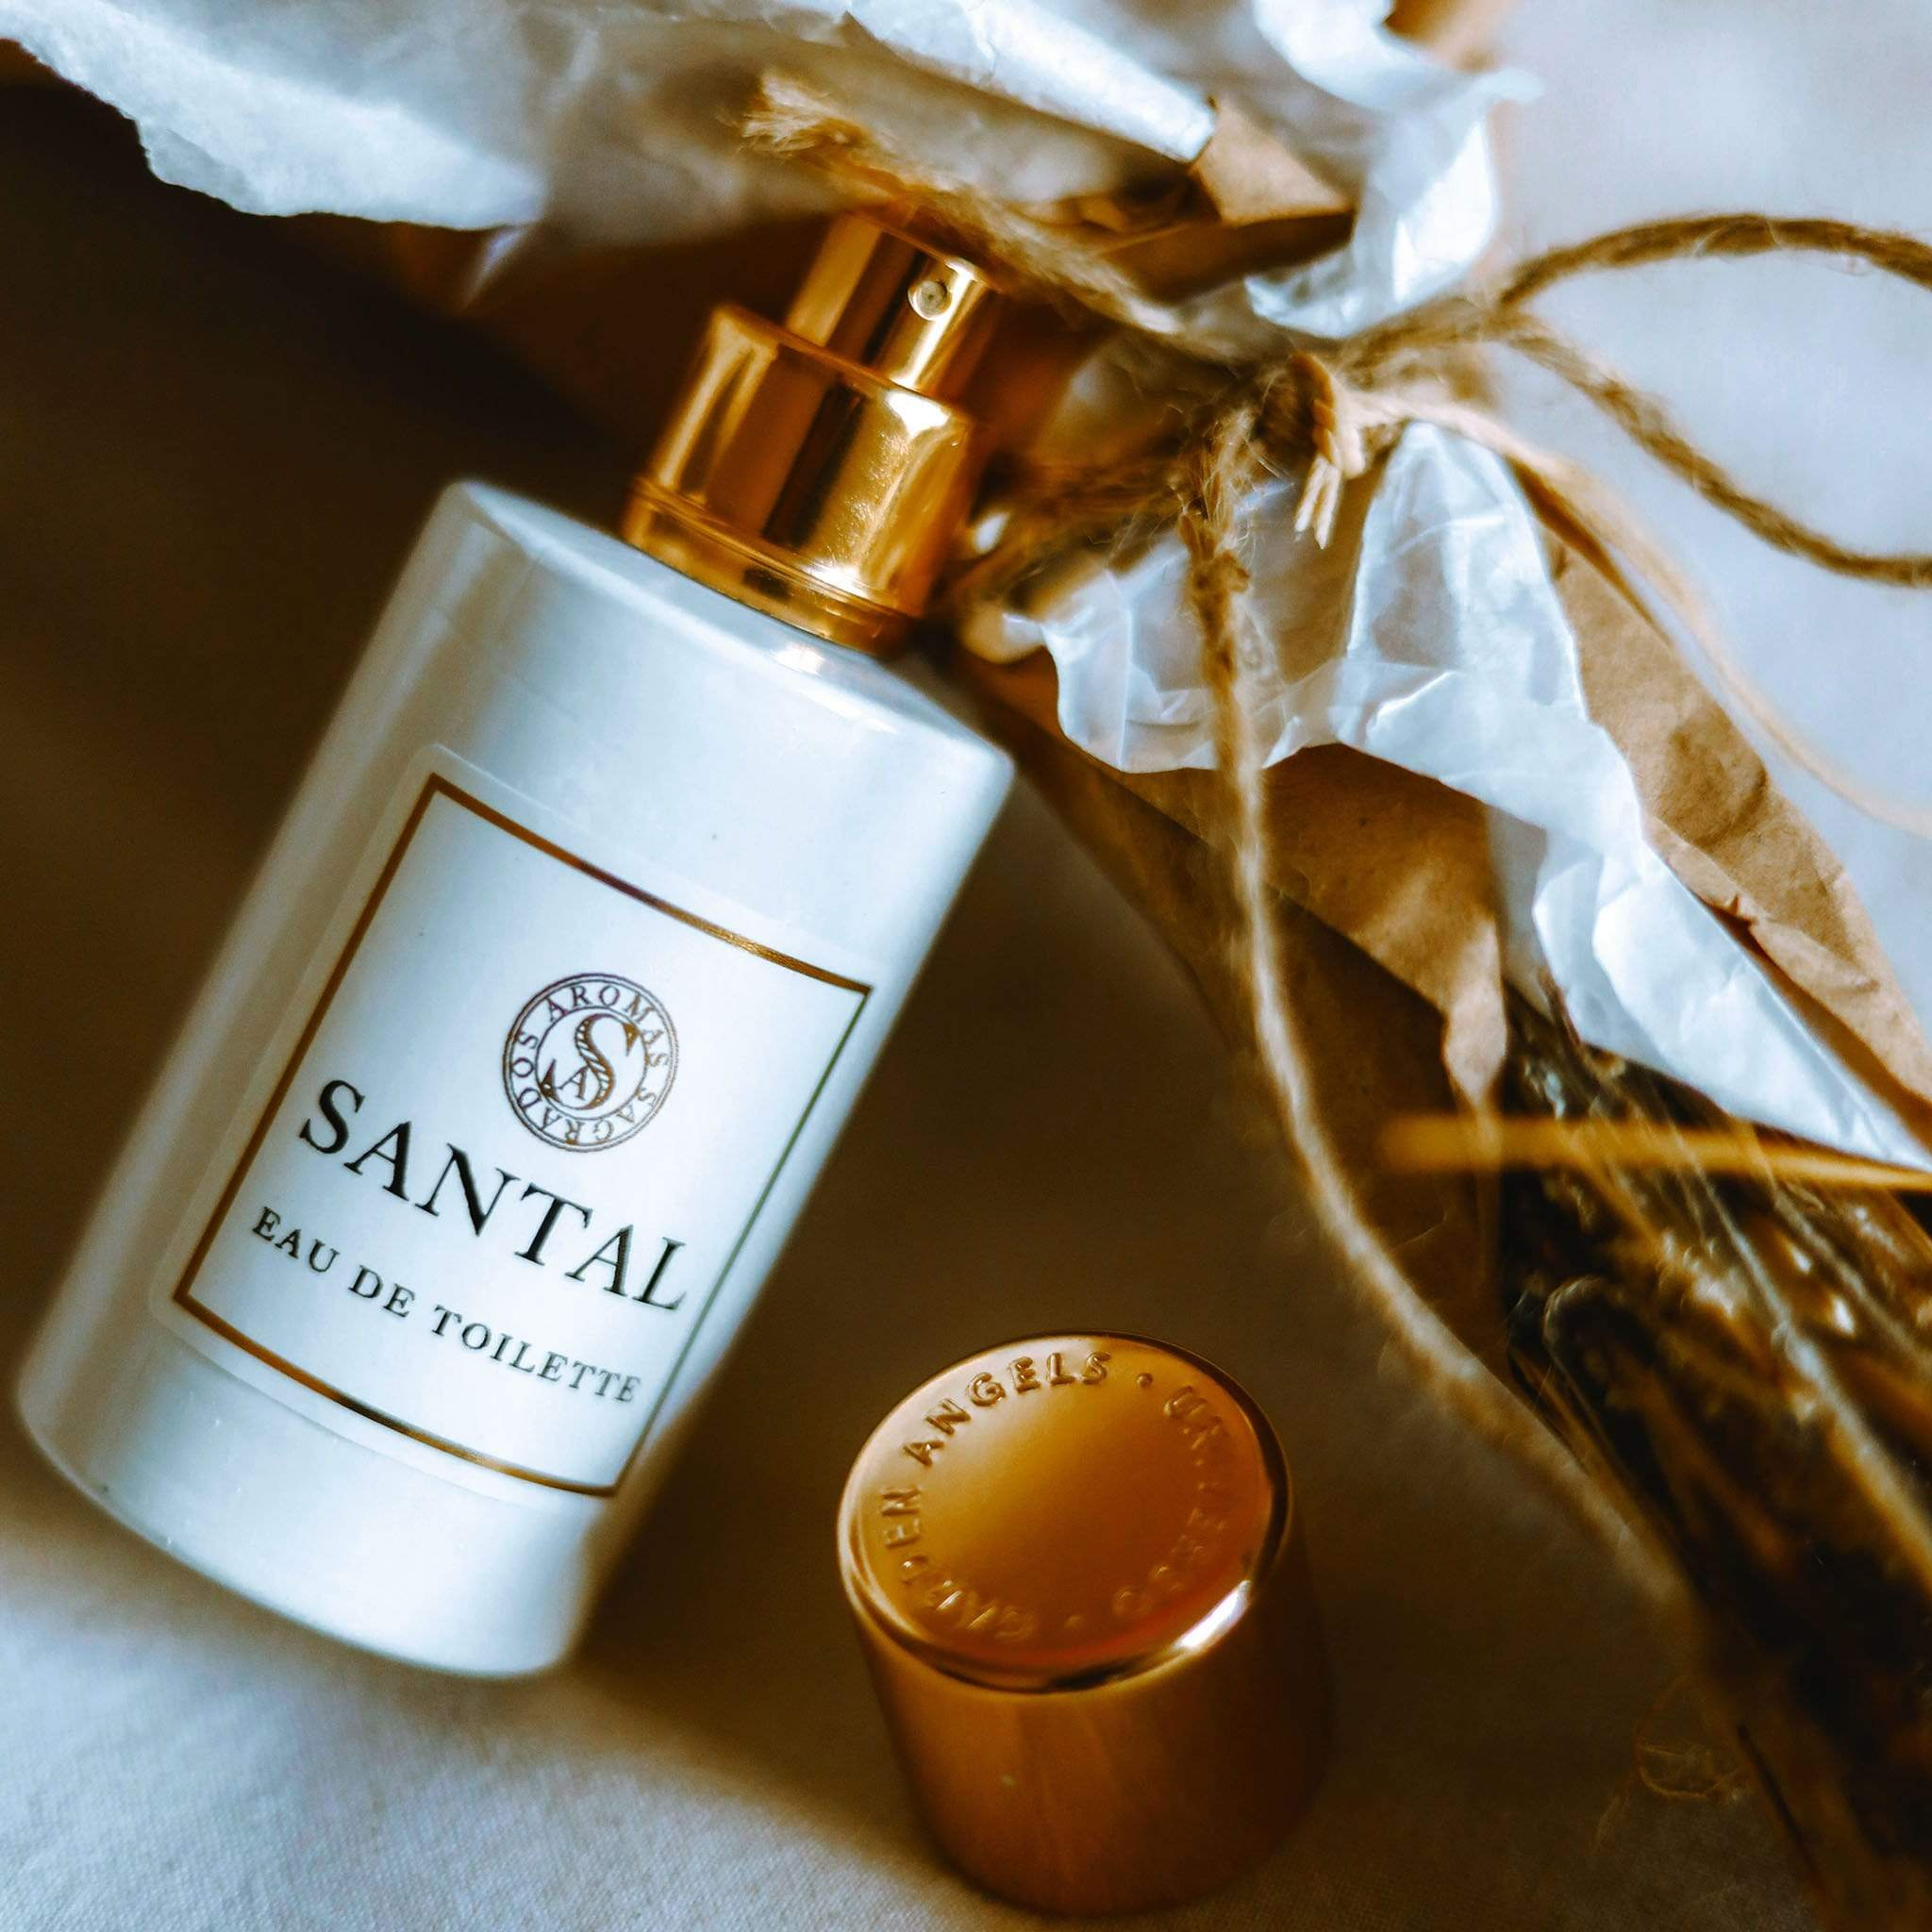 Santal Eau de Toilette